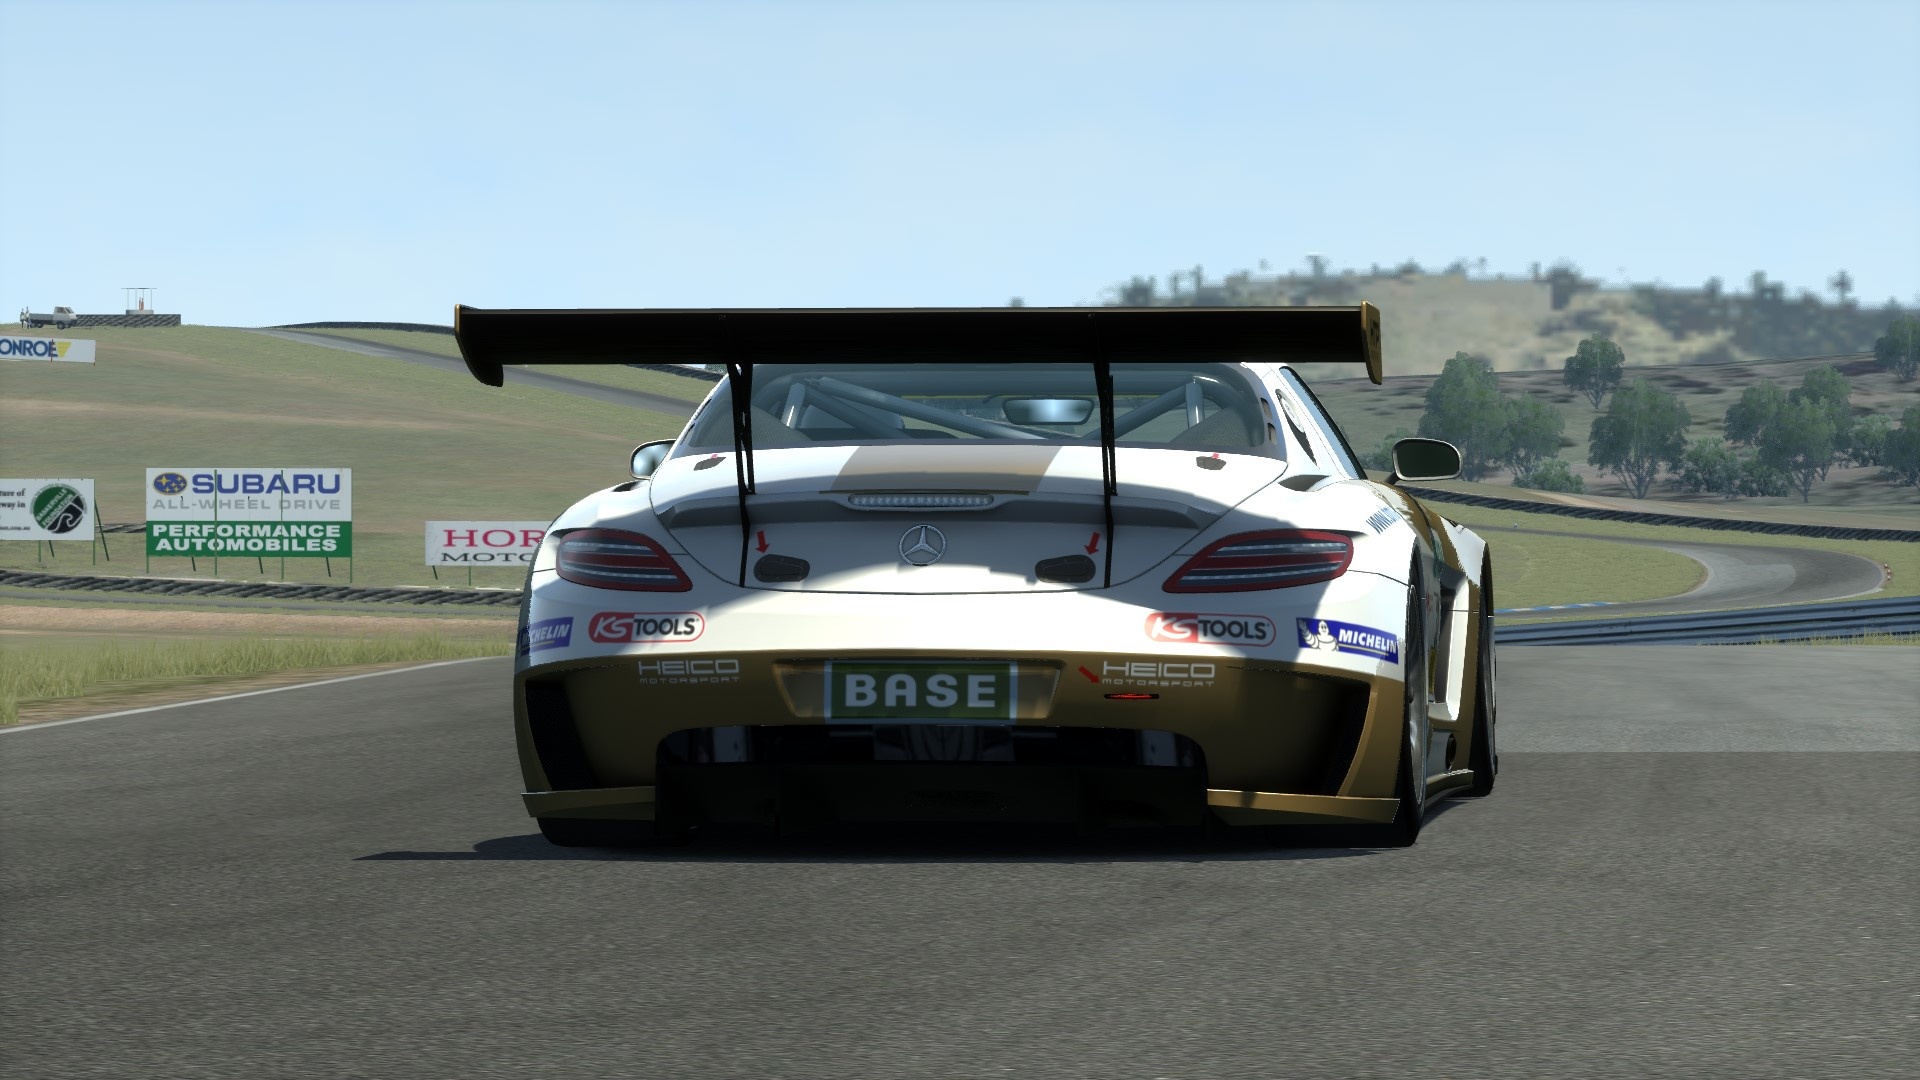 Screenshot_mercedes_sls_gt3_baskerville_beta_08_21-1-116-20-51-45.jpg